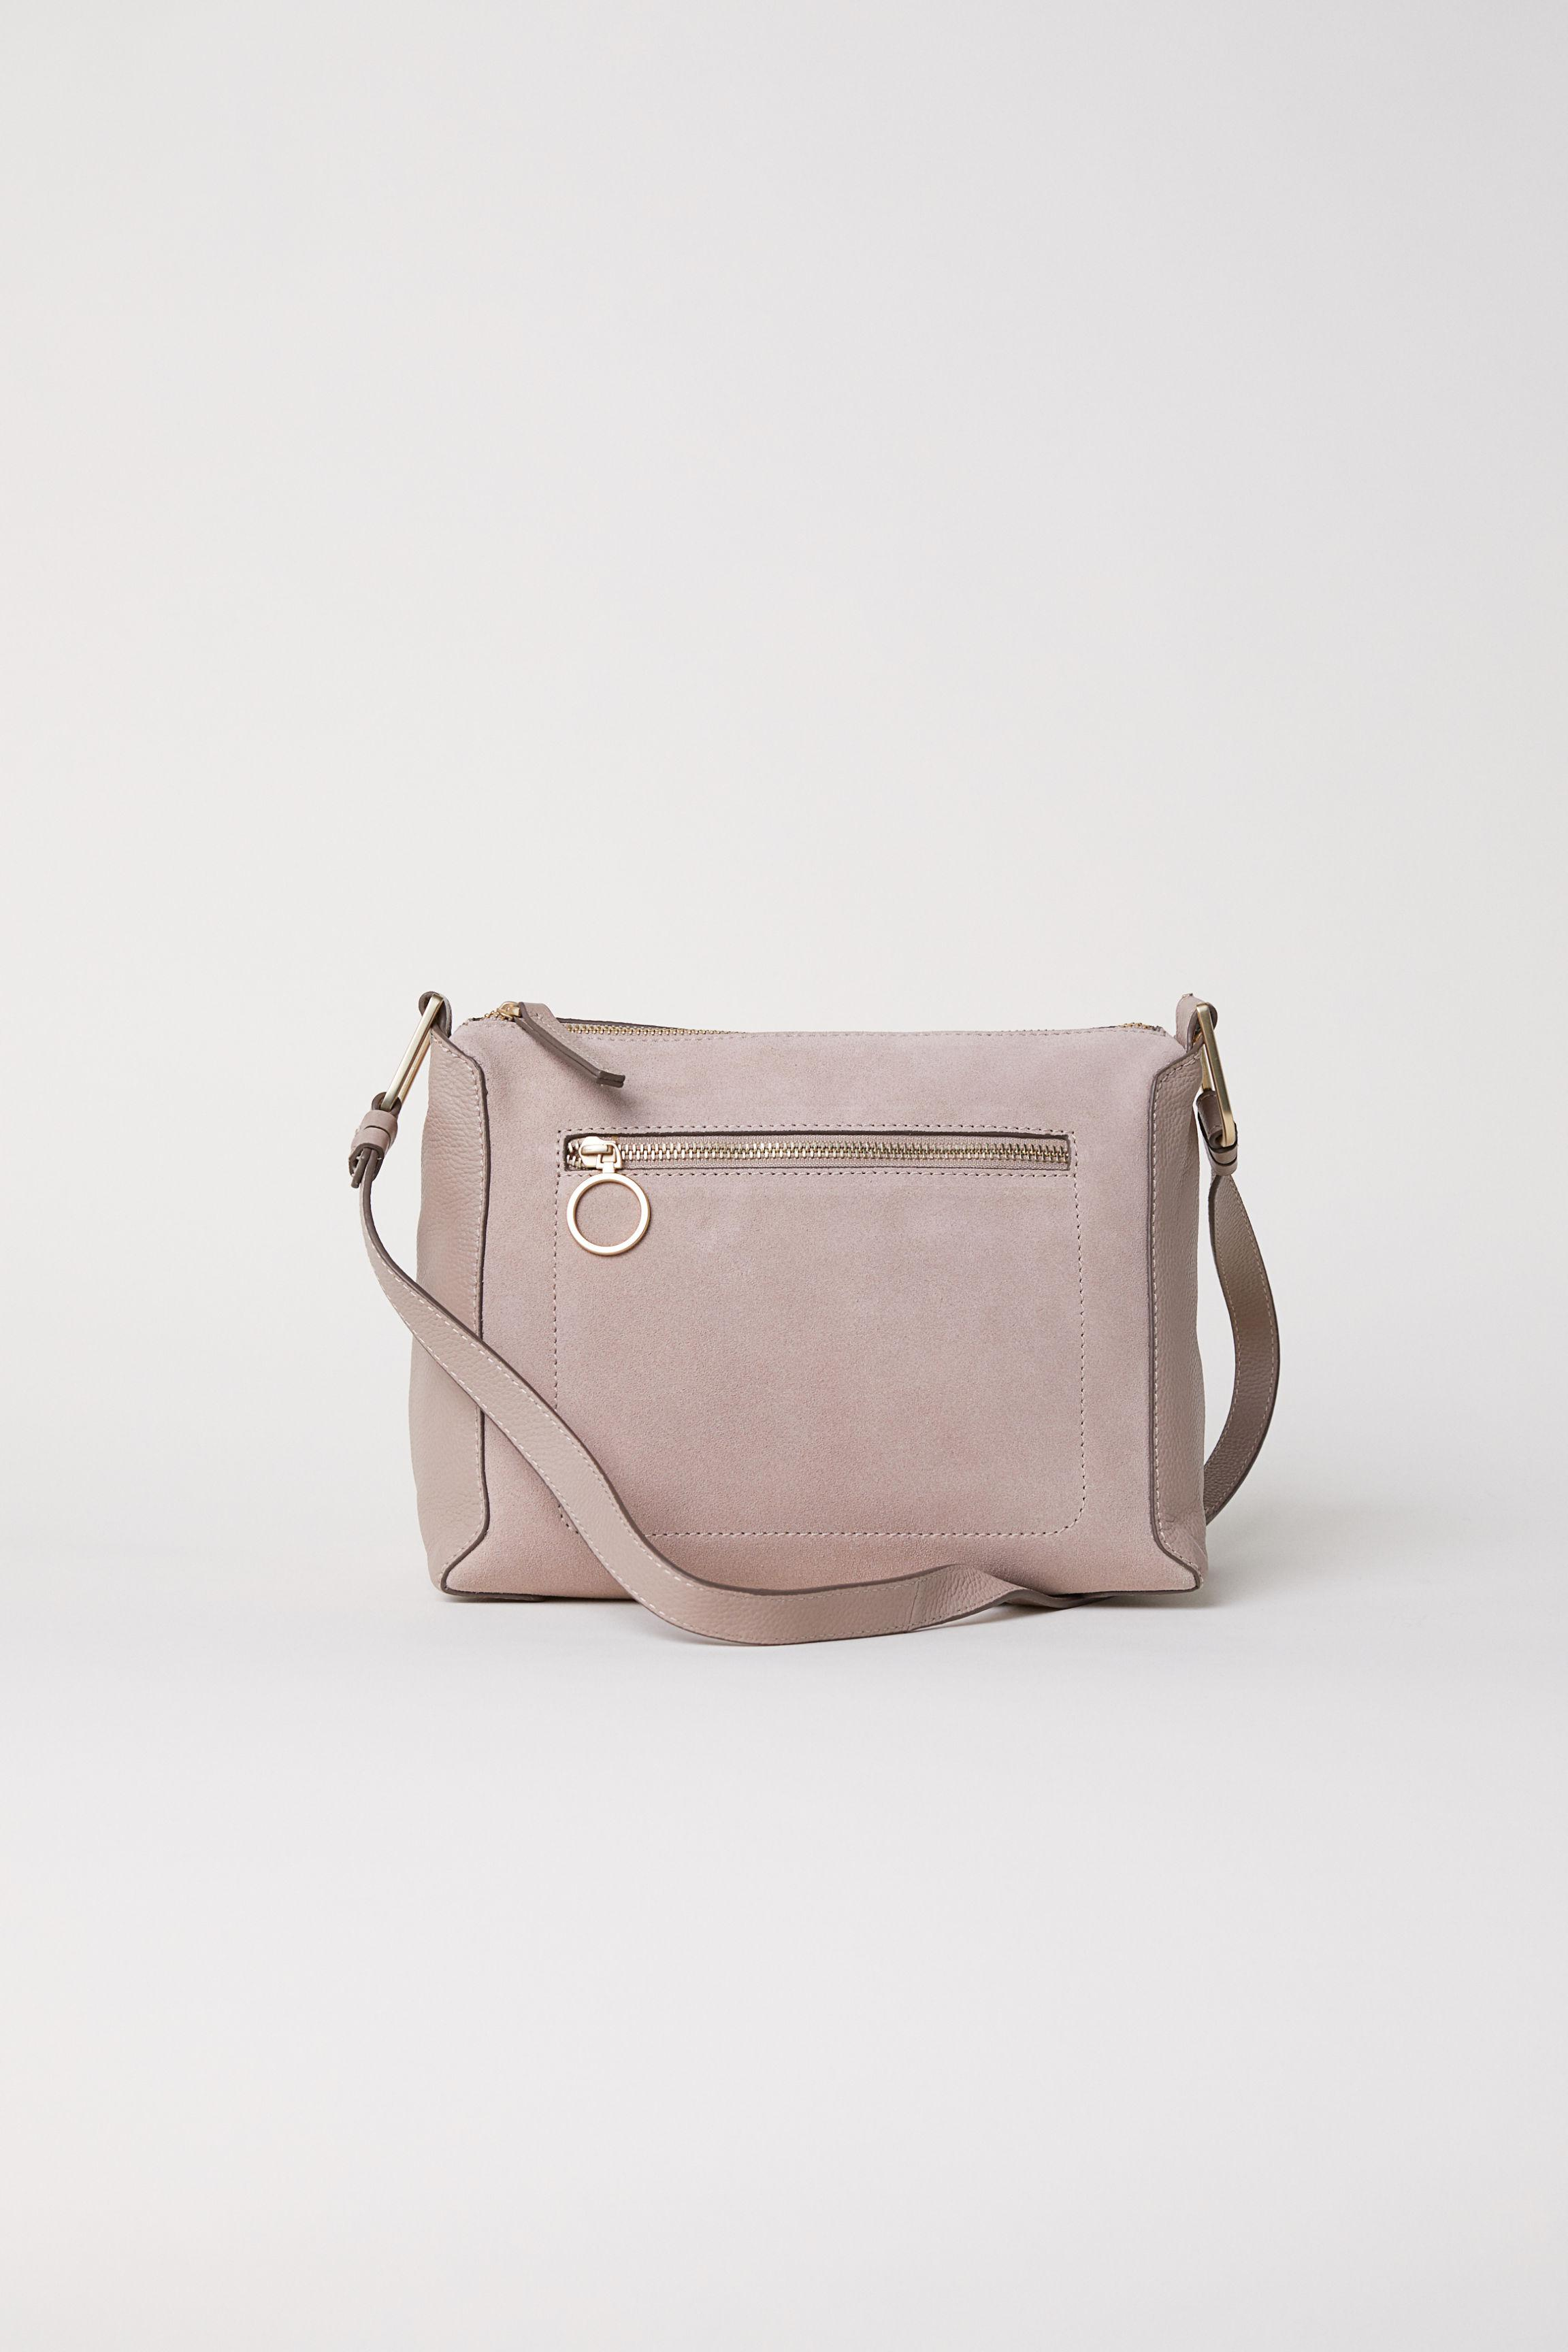 Lyst - H M Suede And Leather Shoulder Bag in Natural 7c47f682cfc43